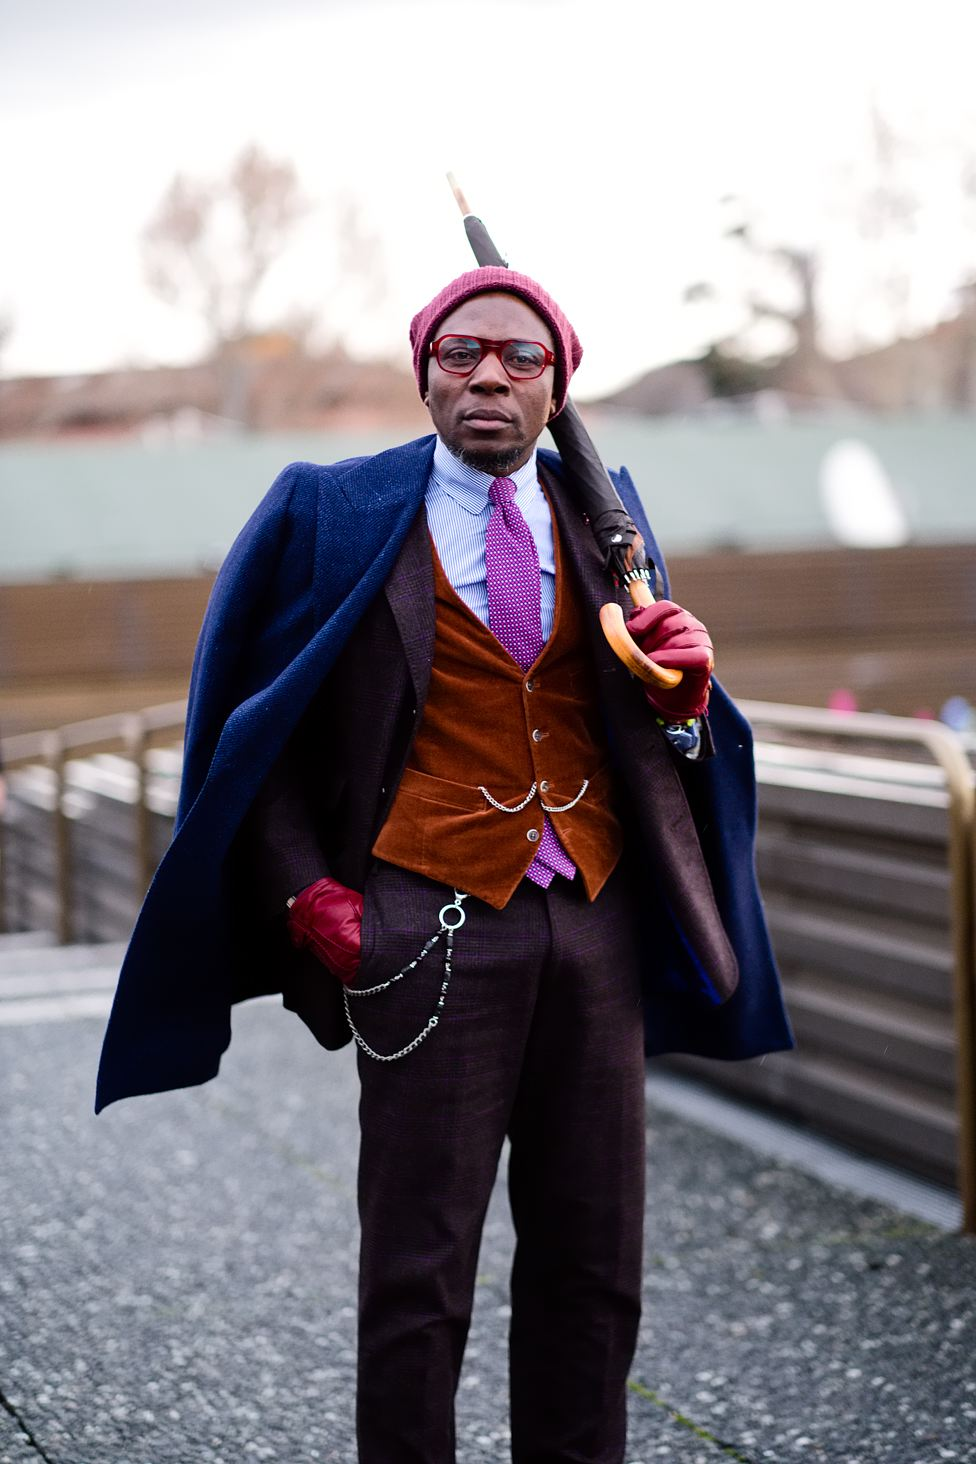 Street Fashion Pitti Uomo Firenze Photos